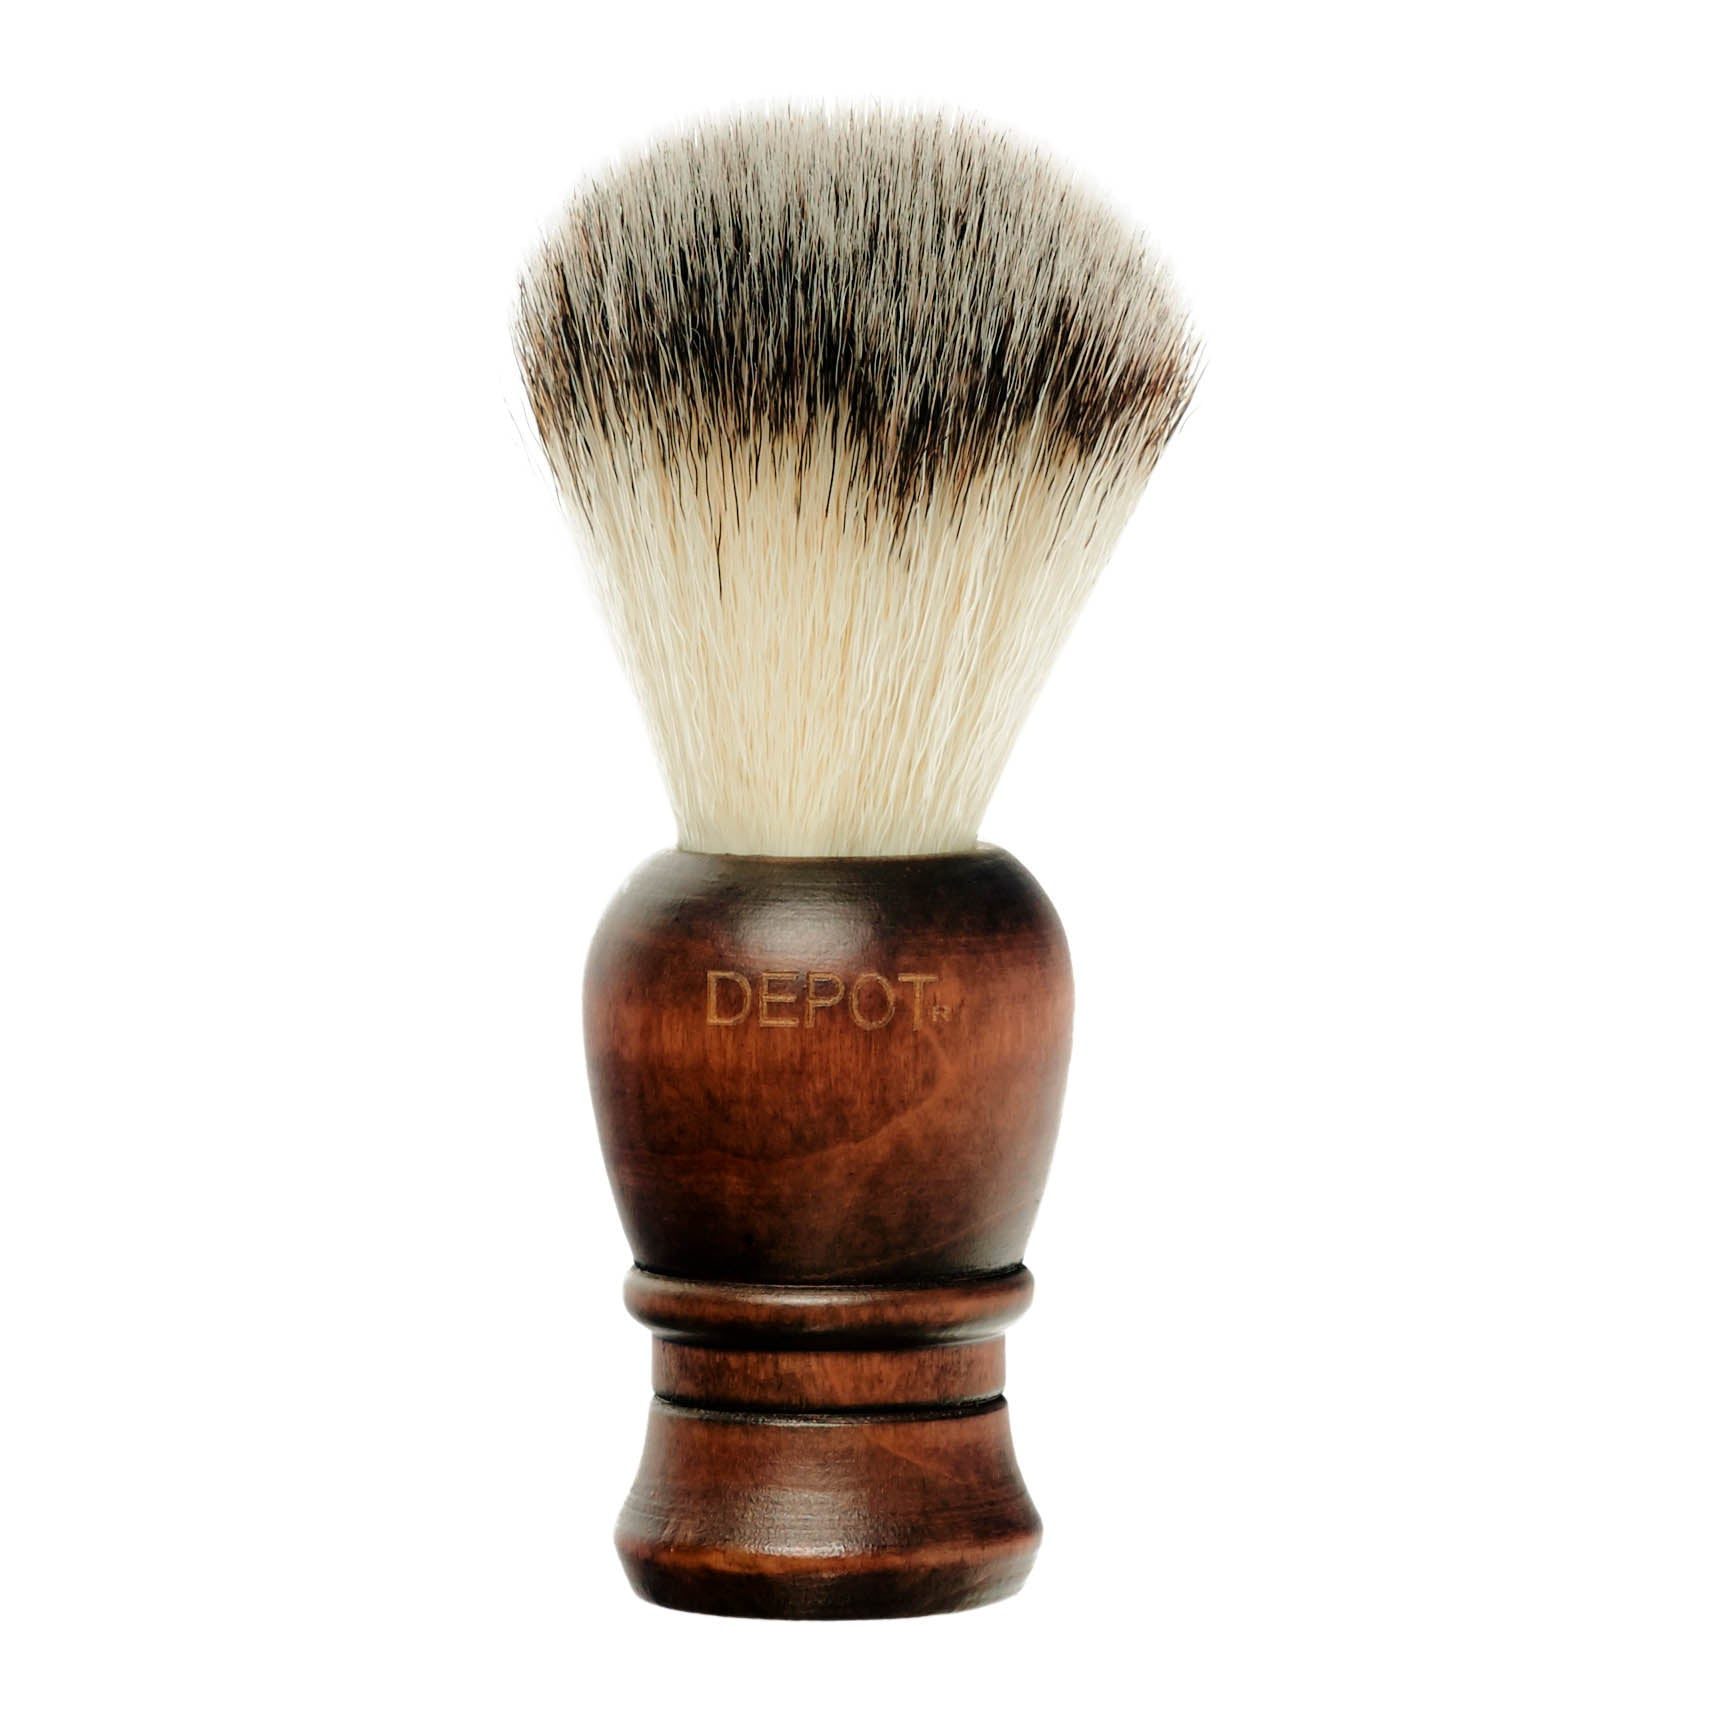 Depot No. 730 Wooden Shaving Brush